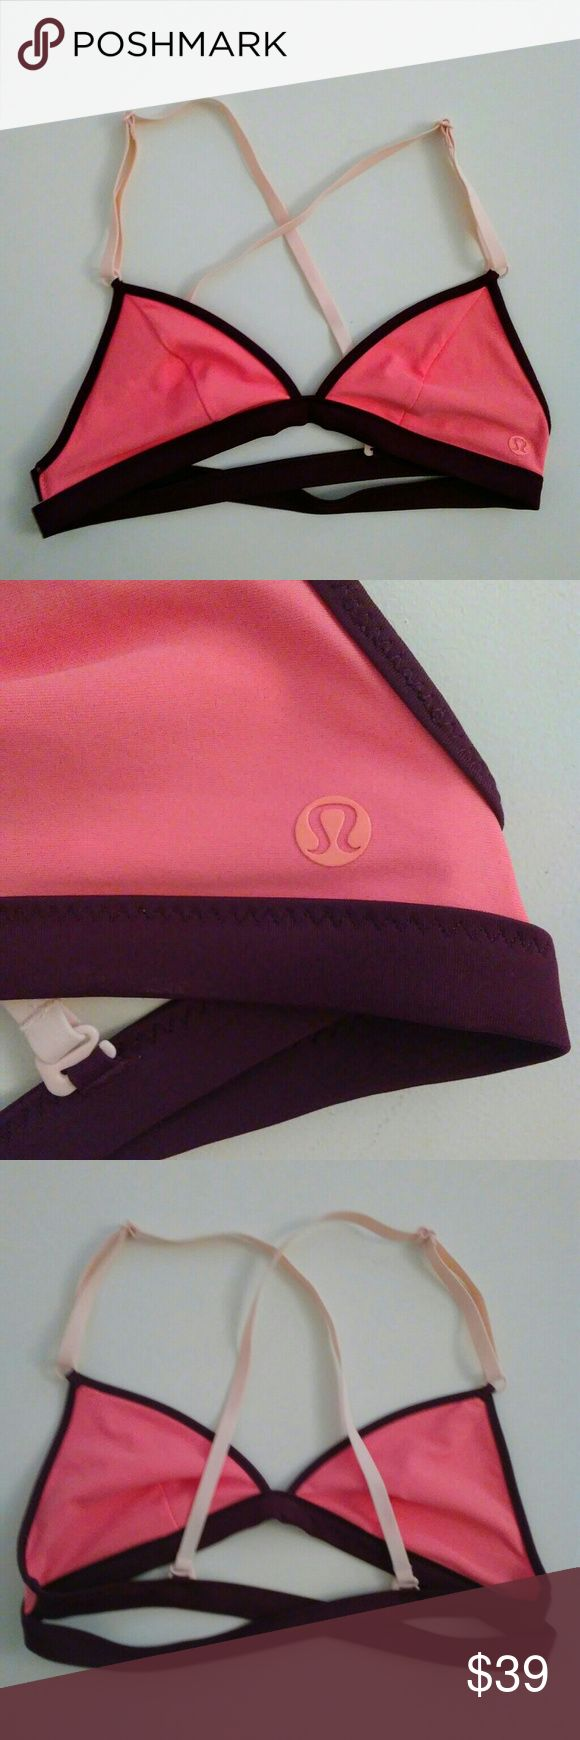 "LULULEMON?Swim?Bikini Top?Pink Surf to Sand XS LULULEMON?Swim?Bikini Top? Surf to Sand Triangle Bra?  Pink with Maroon Accent band Double Crossover Back Band? Adjustable straps can be worn in an X crossback style or in regular fashion.  Size tag has been removed. ?My best guess on size is a Lulu Size 4 which is an Extra Small. ?I believe it will best fit an A-B cup. ?Please check measurements.  Measurements laying flat: 13"" chest band 6"" from top of the triangle straight down to bottom 6.75""…"